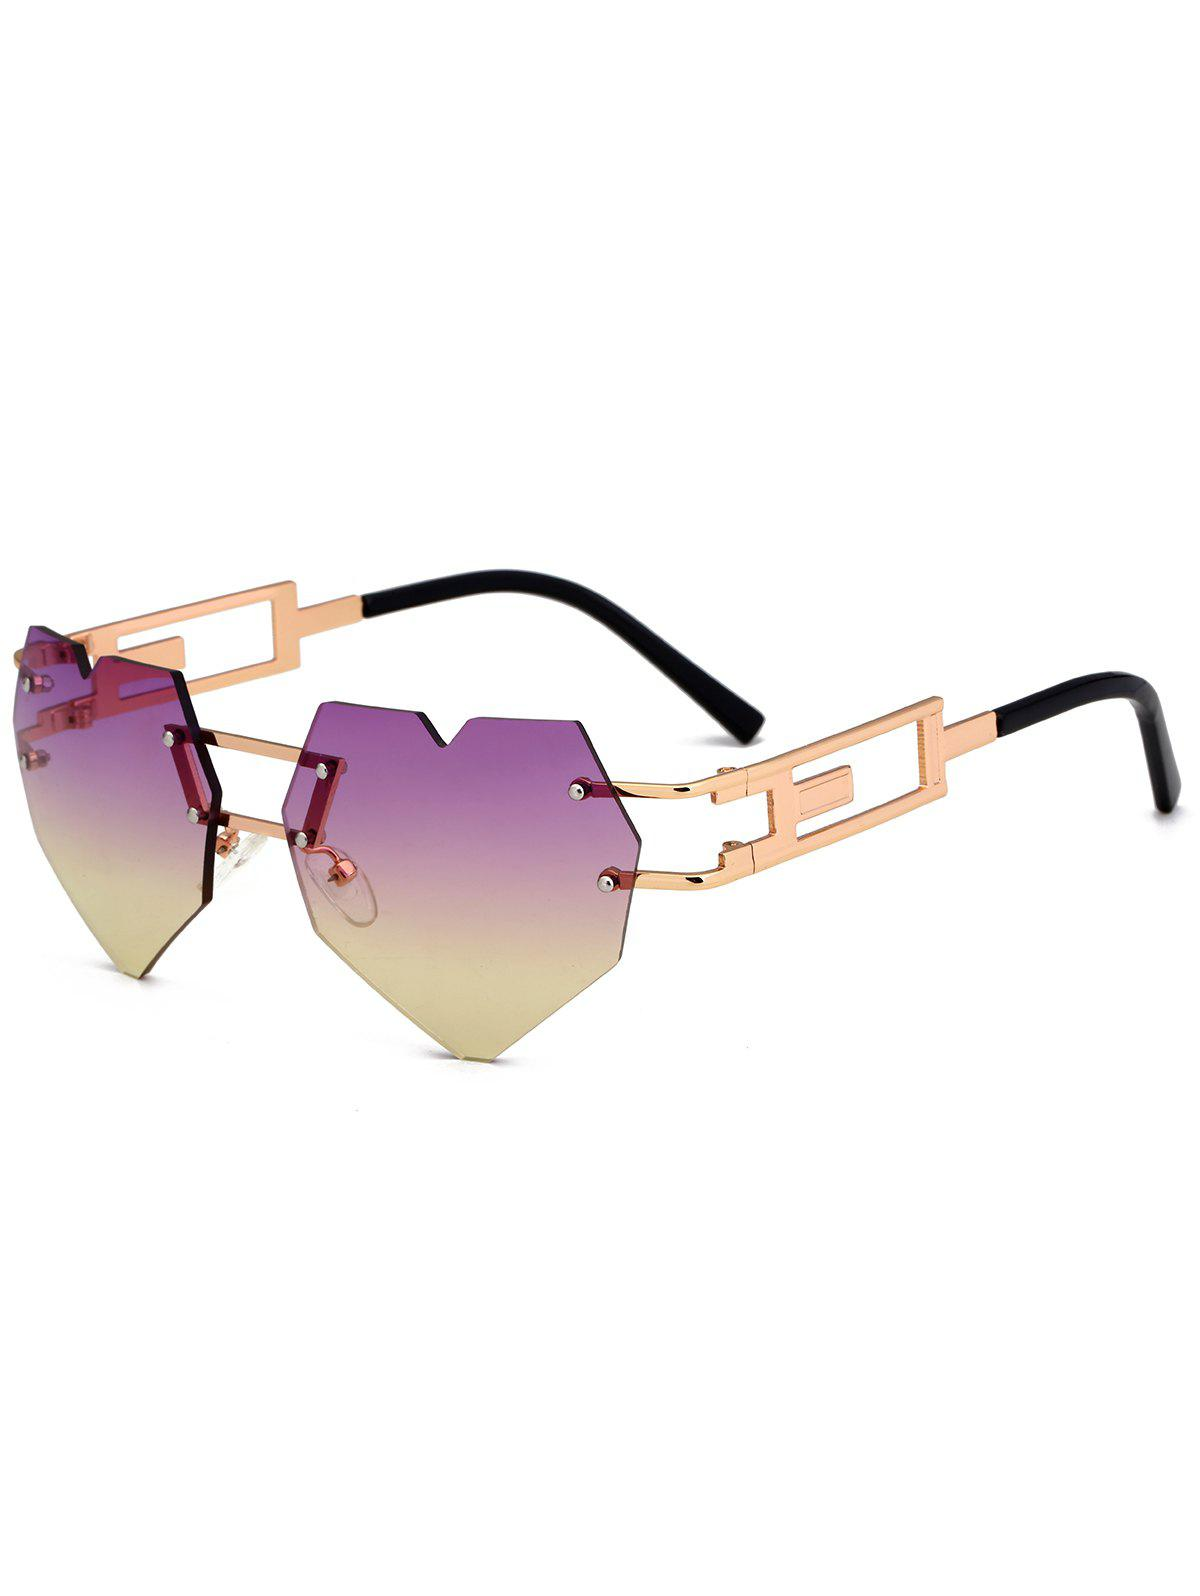 Outdoor Love Heart Decorated Hollow Frame Rimless Sunglasses - PURPLE/YELLOW C